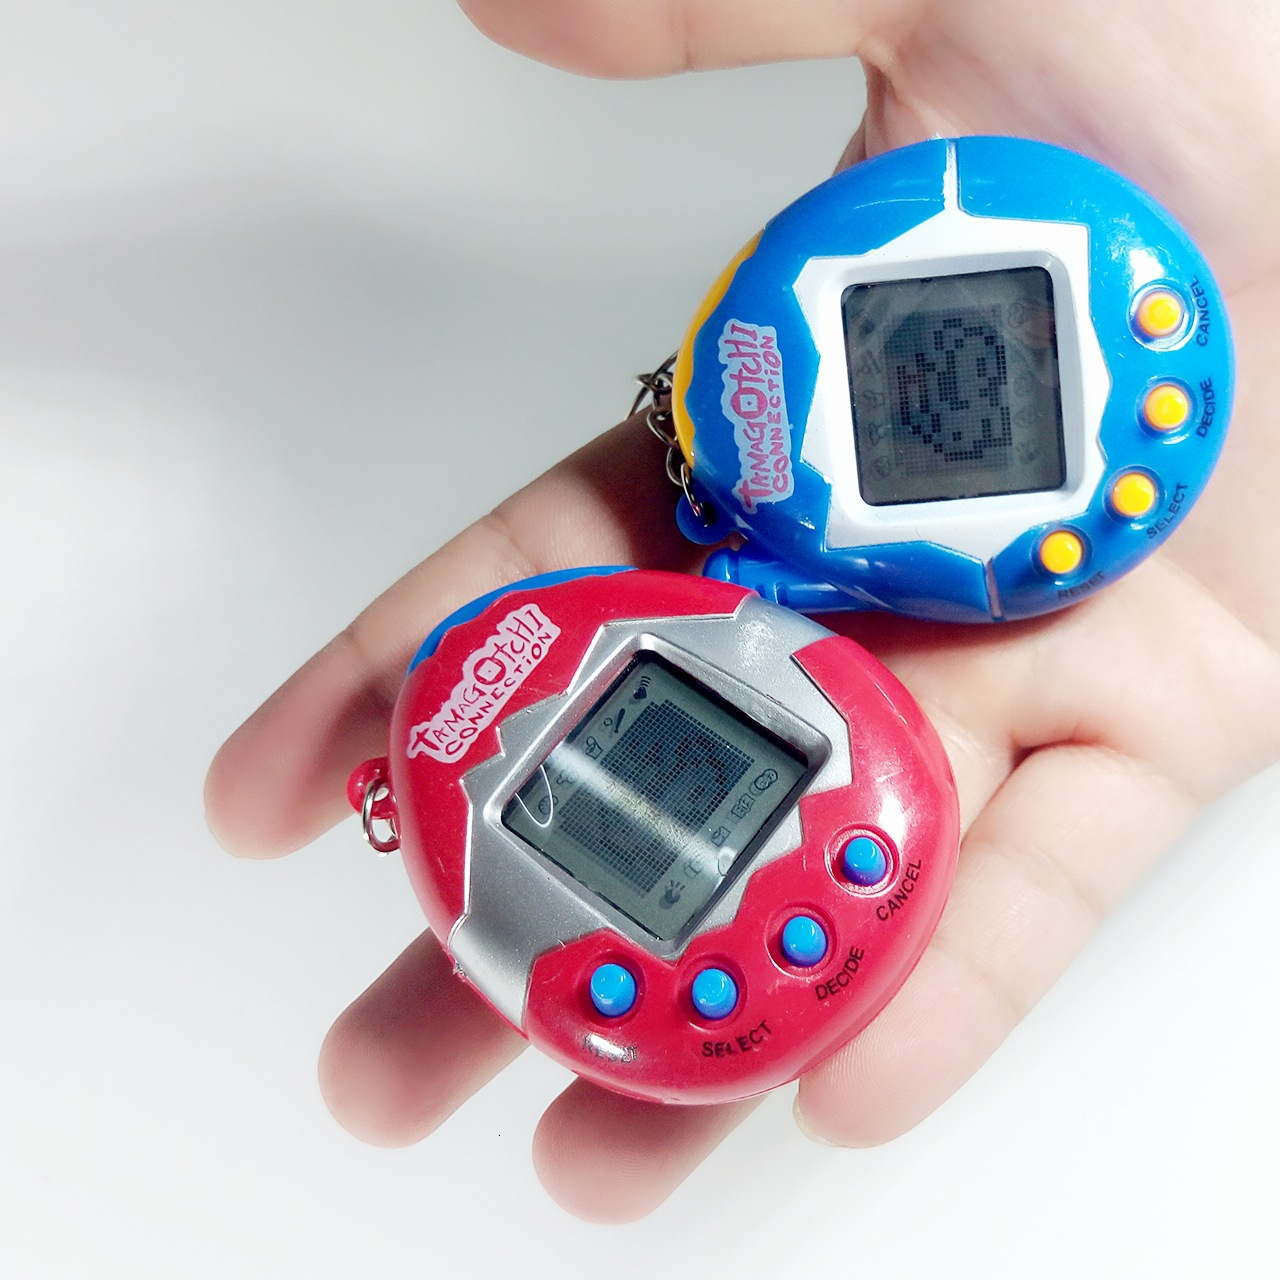 49 Pets In One Virtual Cyber Pet Toy Funny Robot Hot Sale Tamago Electronic Interactive Pets Toys Forkids 90S Nostalgic